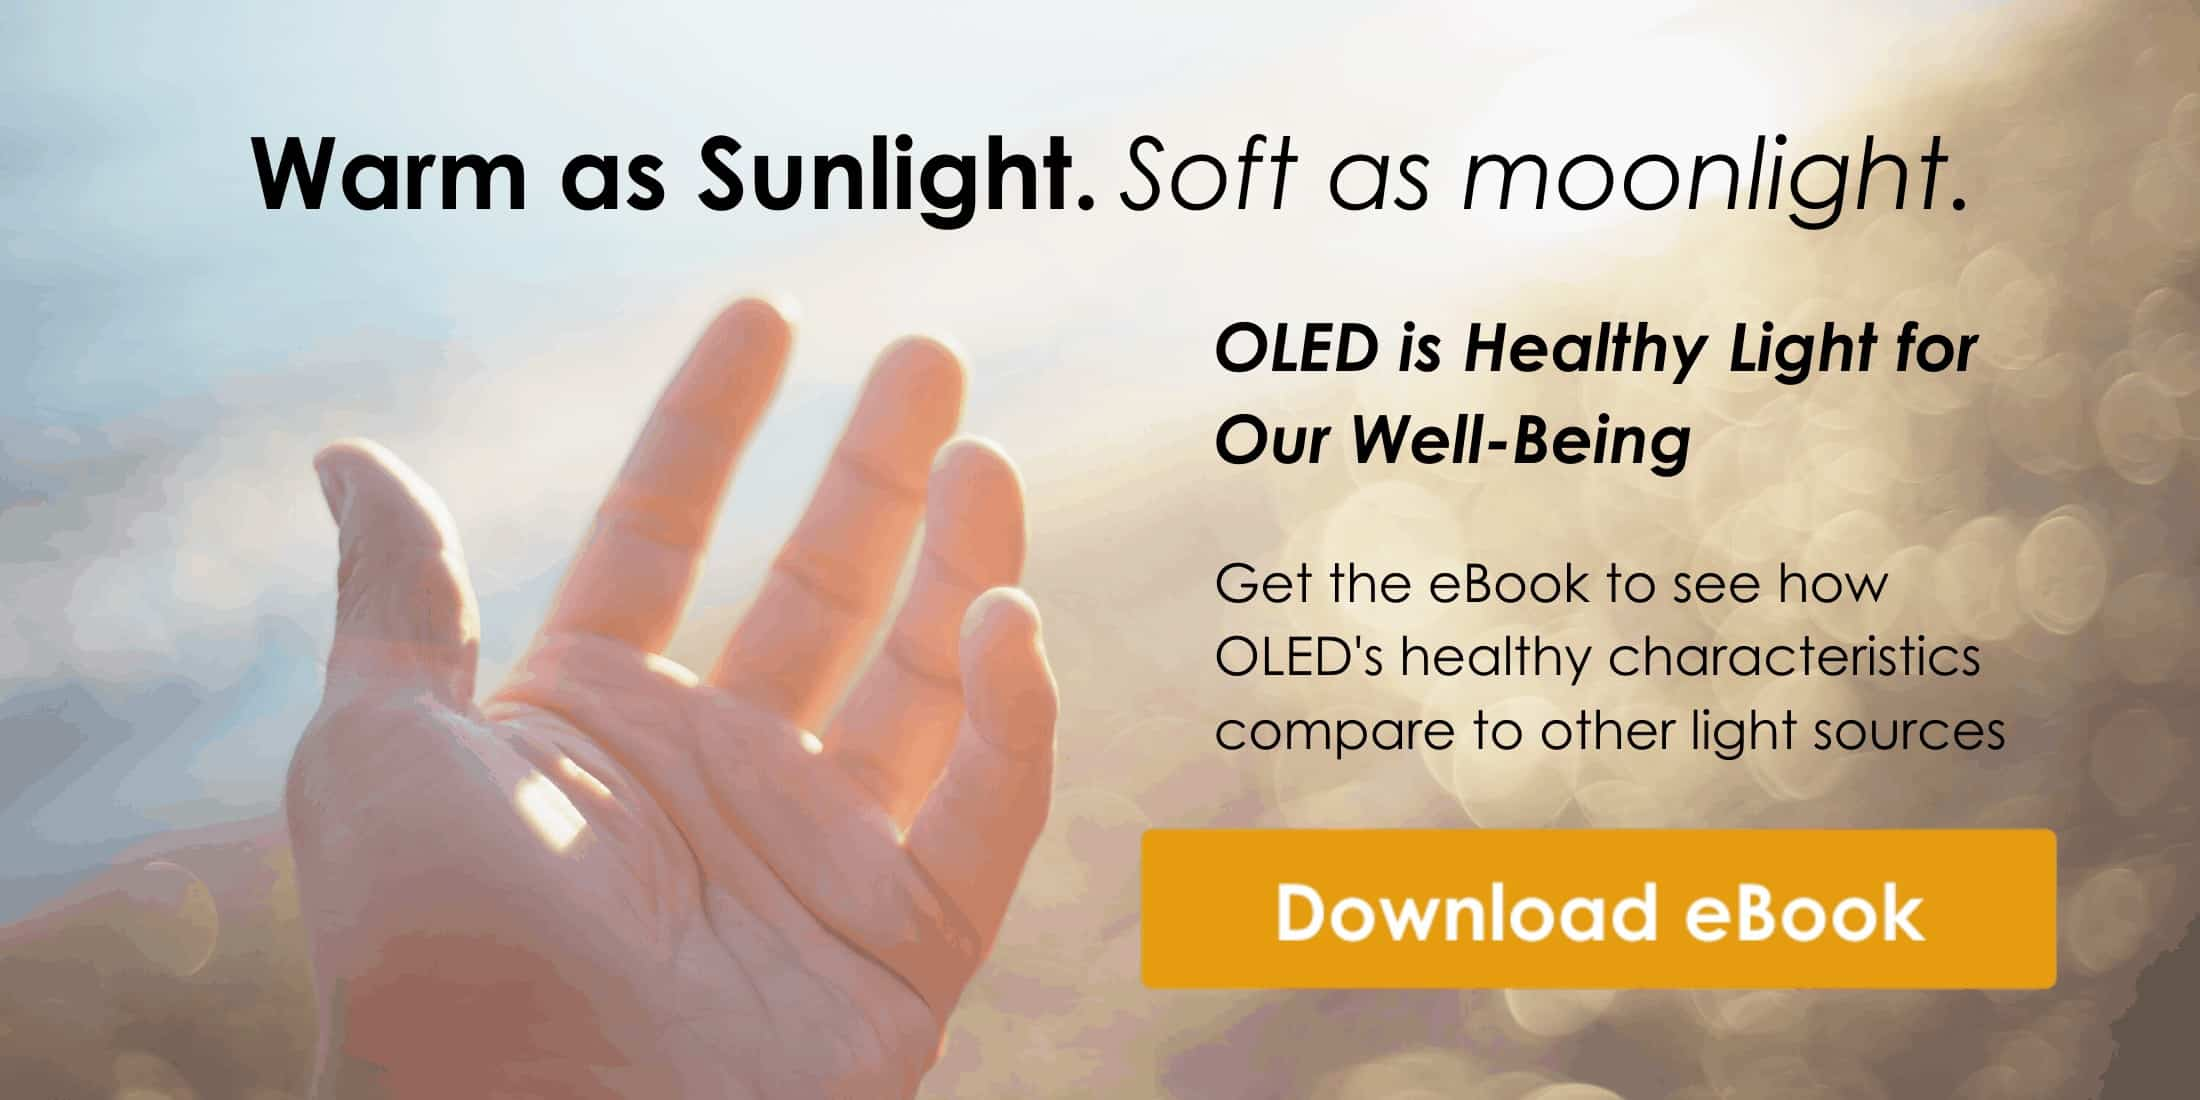 OLED Light is Healthy Light for Our Well-Being - Download the eBook Today